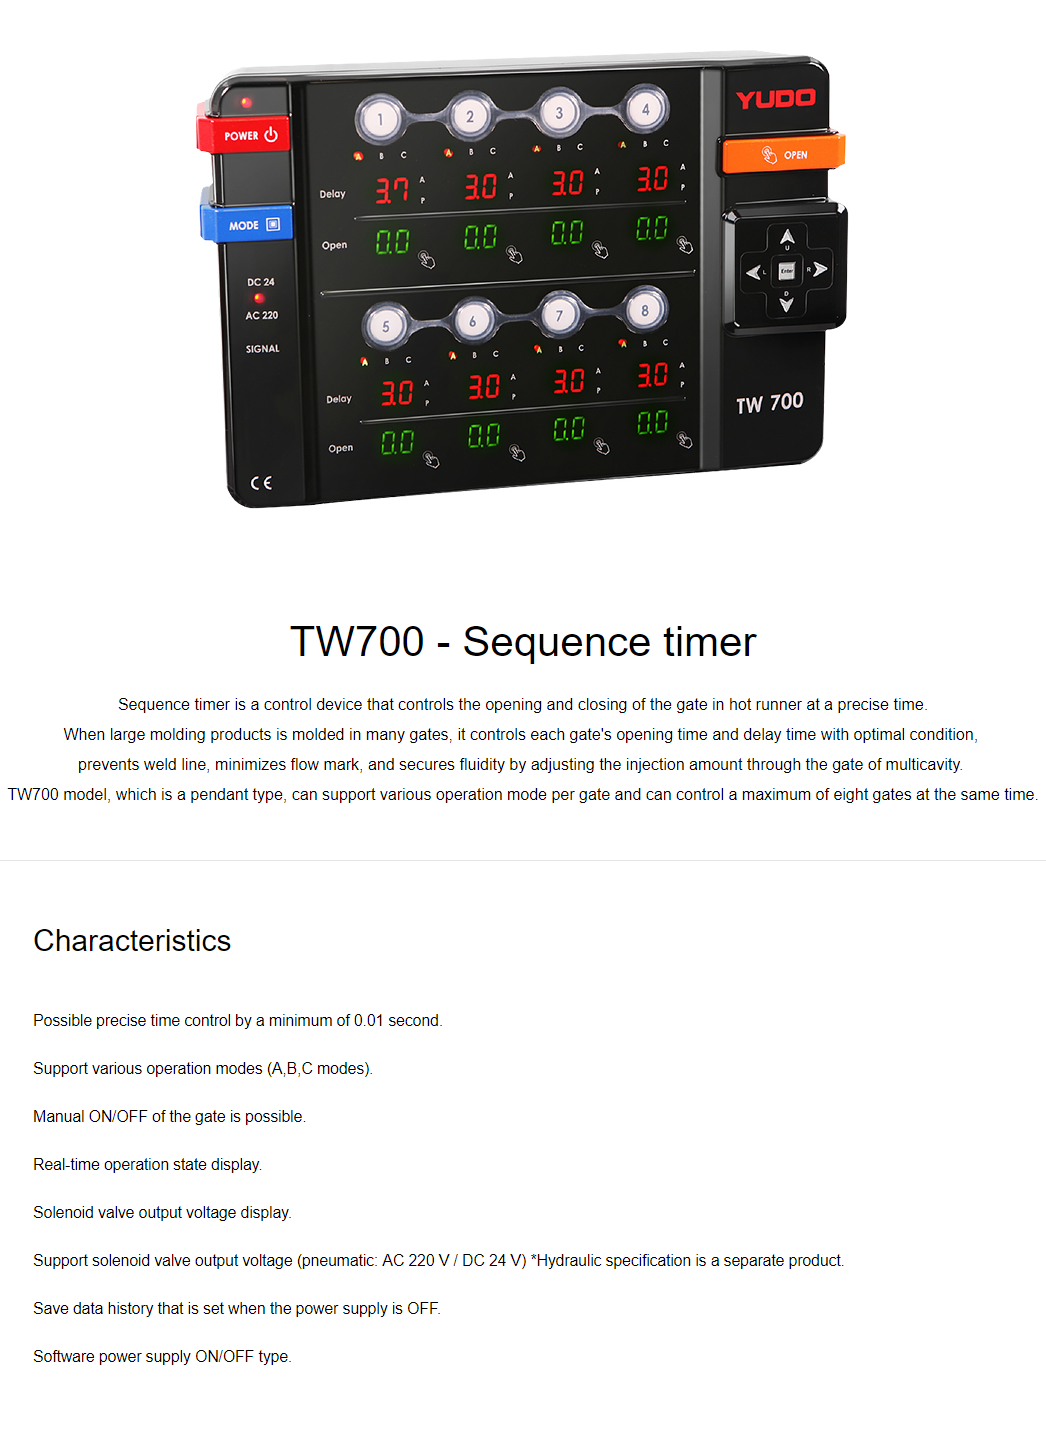 YUDO Sequence timer TW700